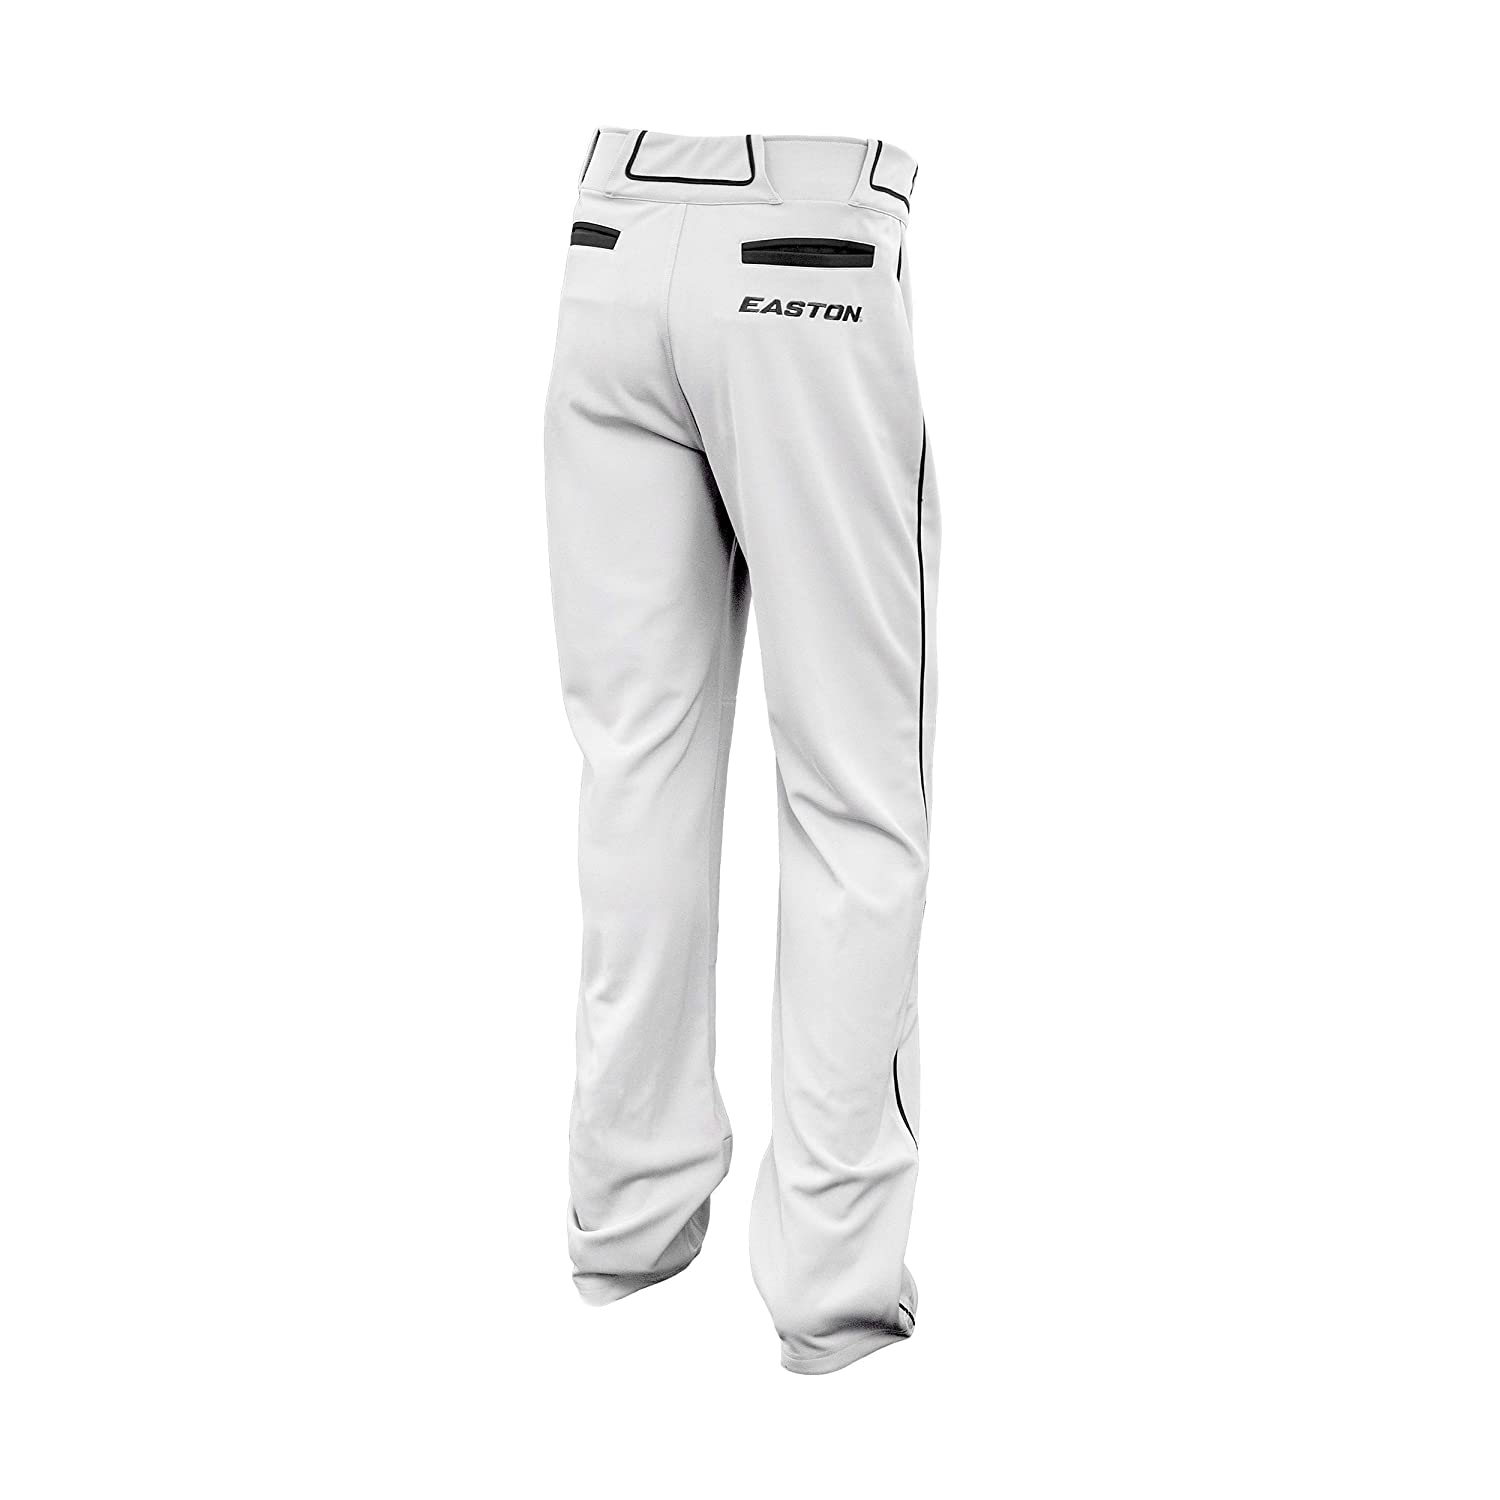 Adult S Innovative Adjustable Inseam System 2020 2 Batting Glove Back Pockets Piped Open Bottom Hem Opening Easton Walk-Off Softball Pant XXL Double Reinforced Knee